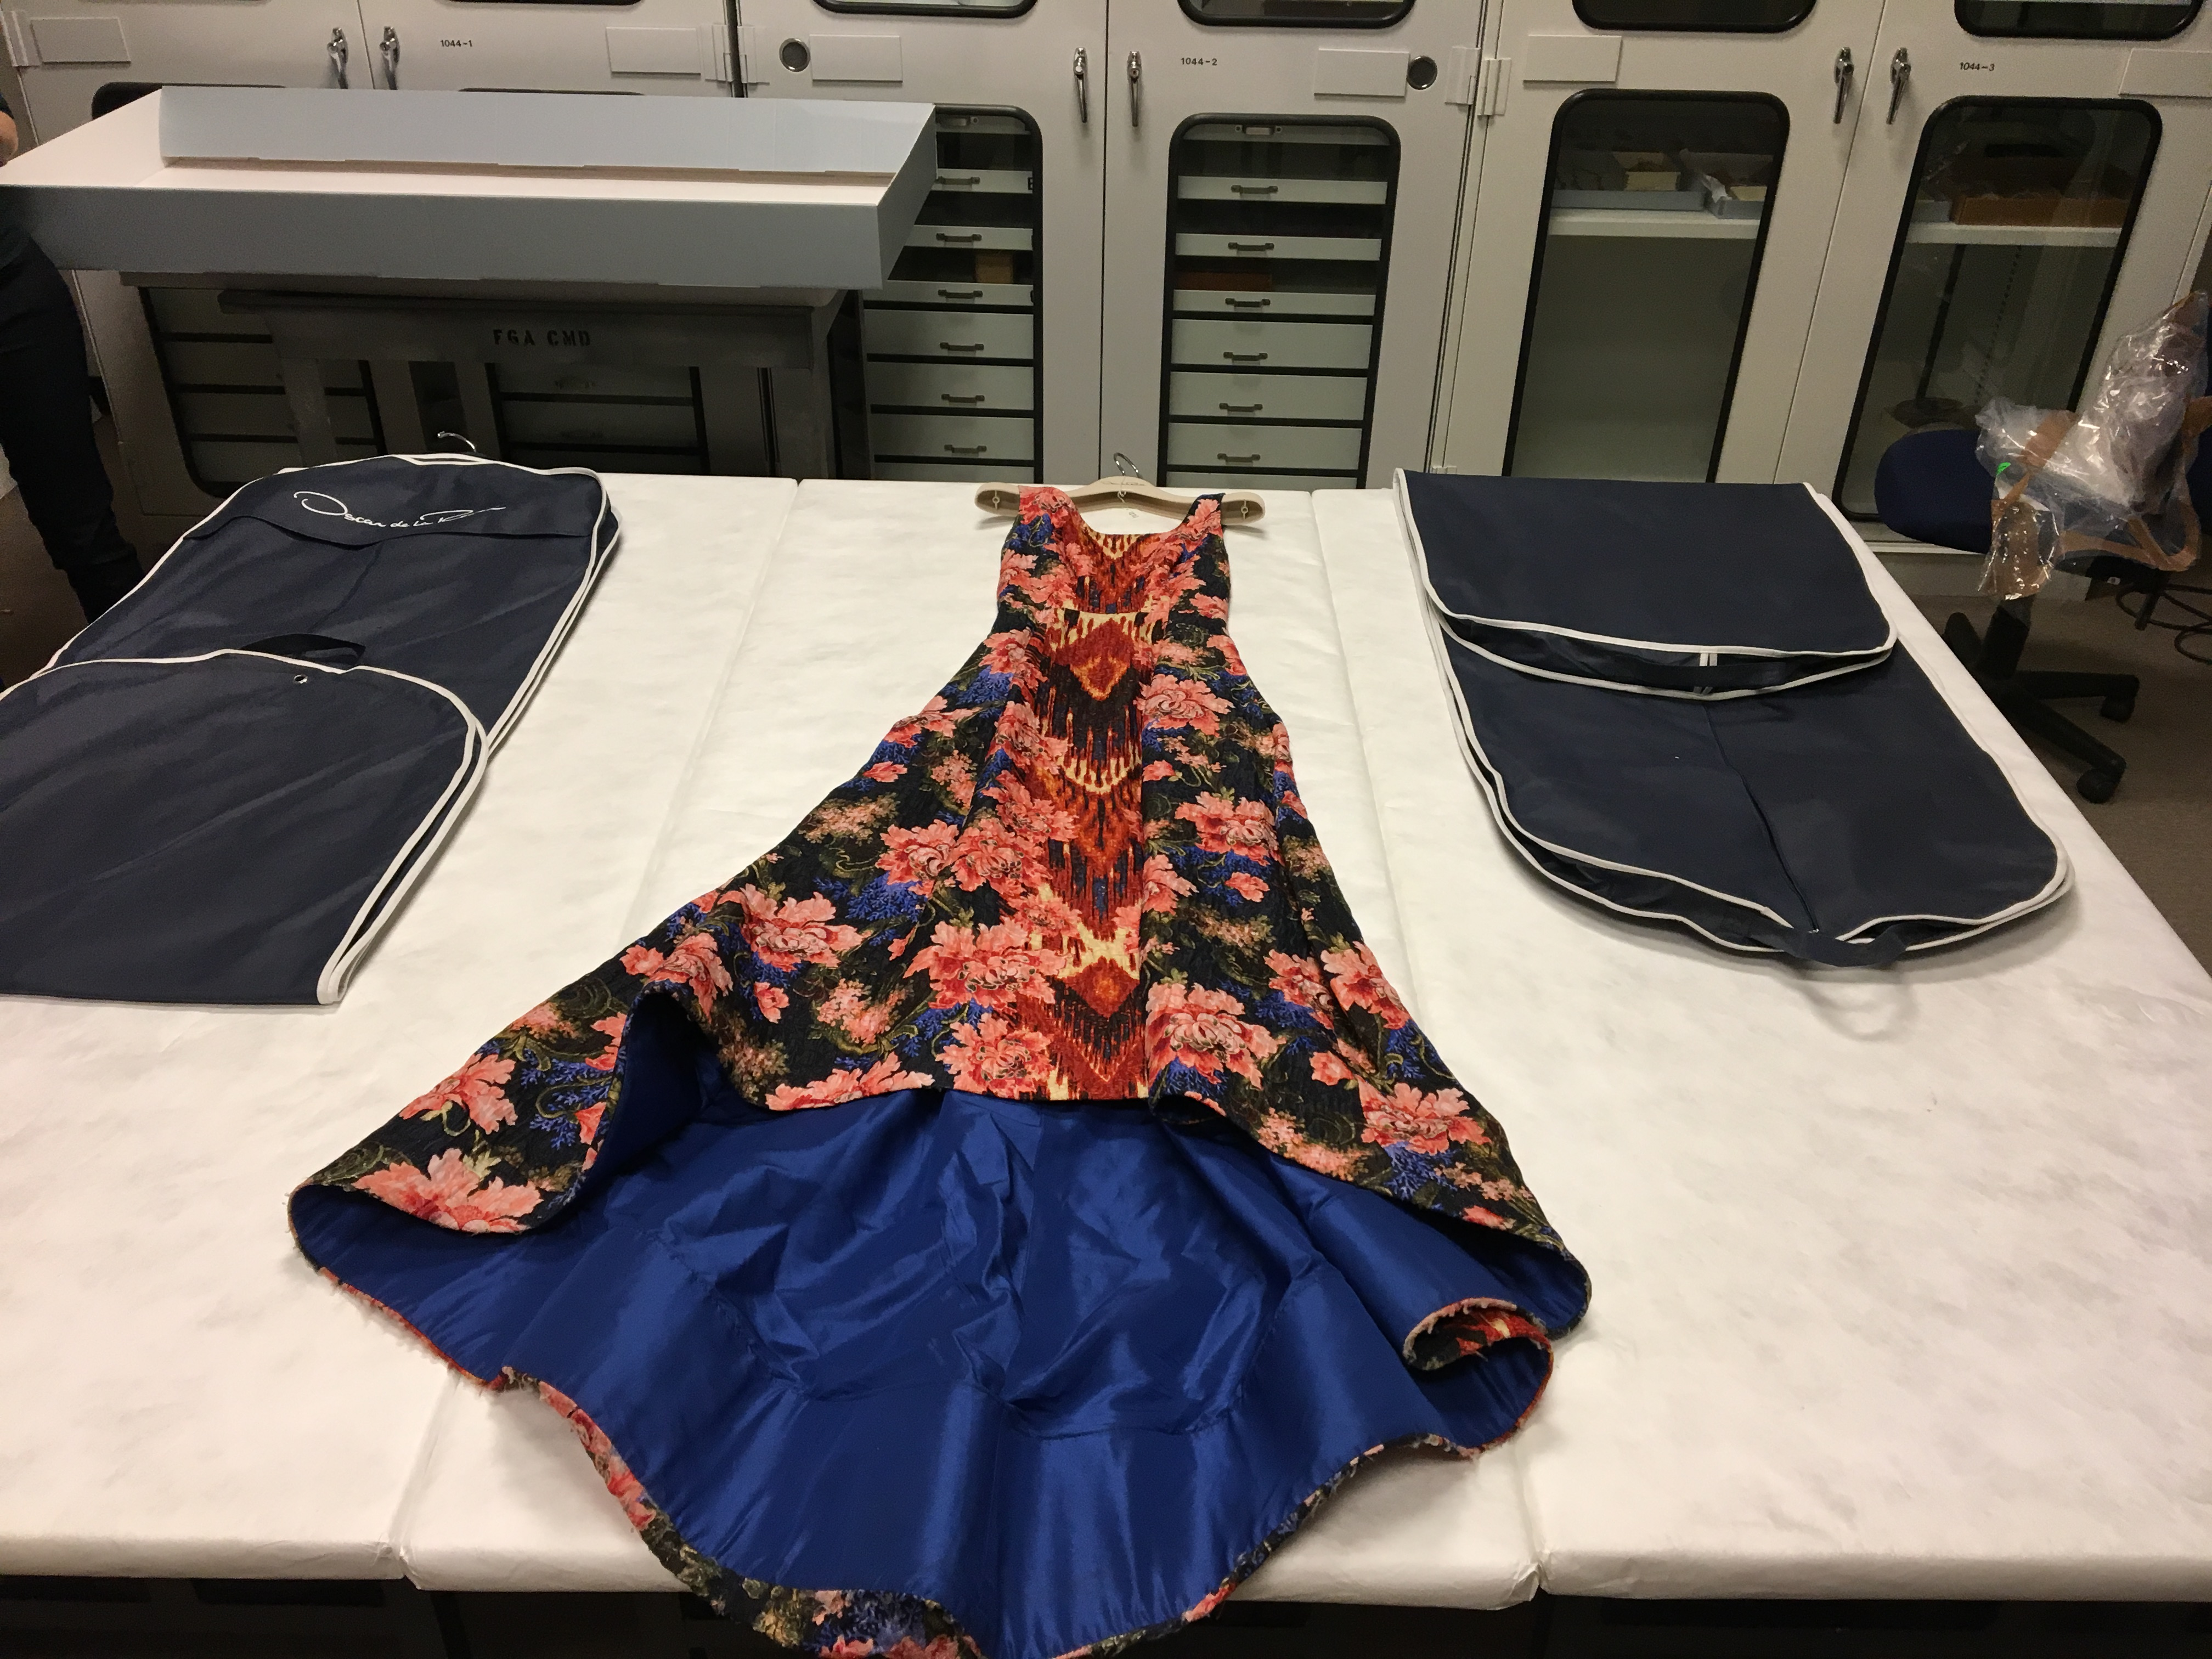 an elaborately floral patterned dress laid out on a table between two navy garment bags